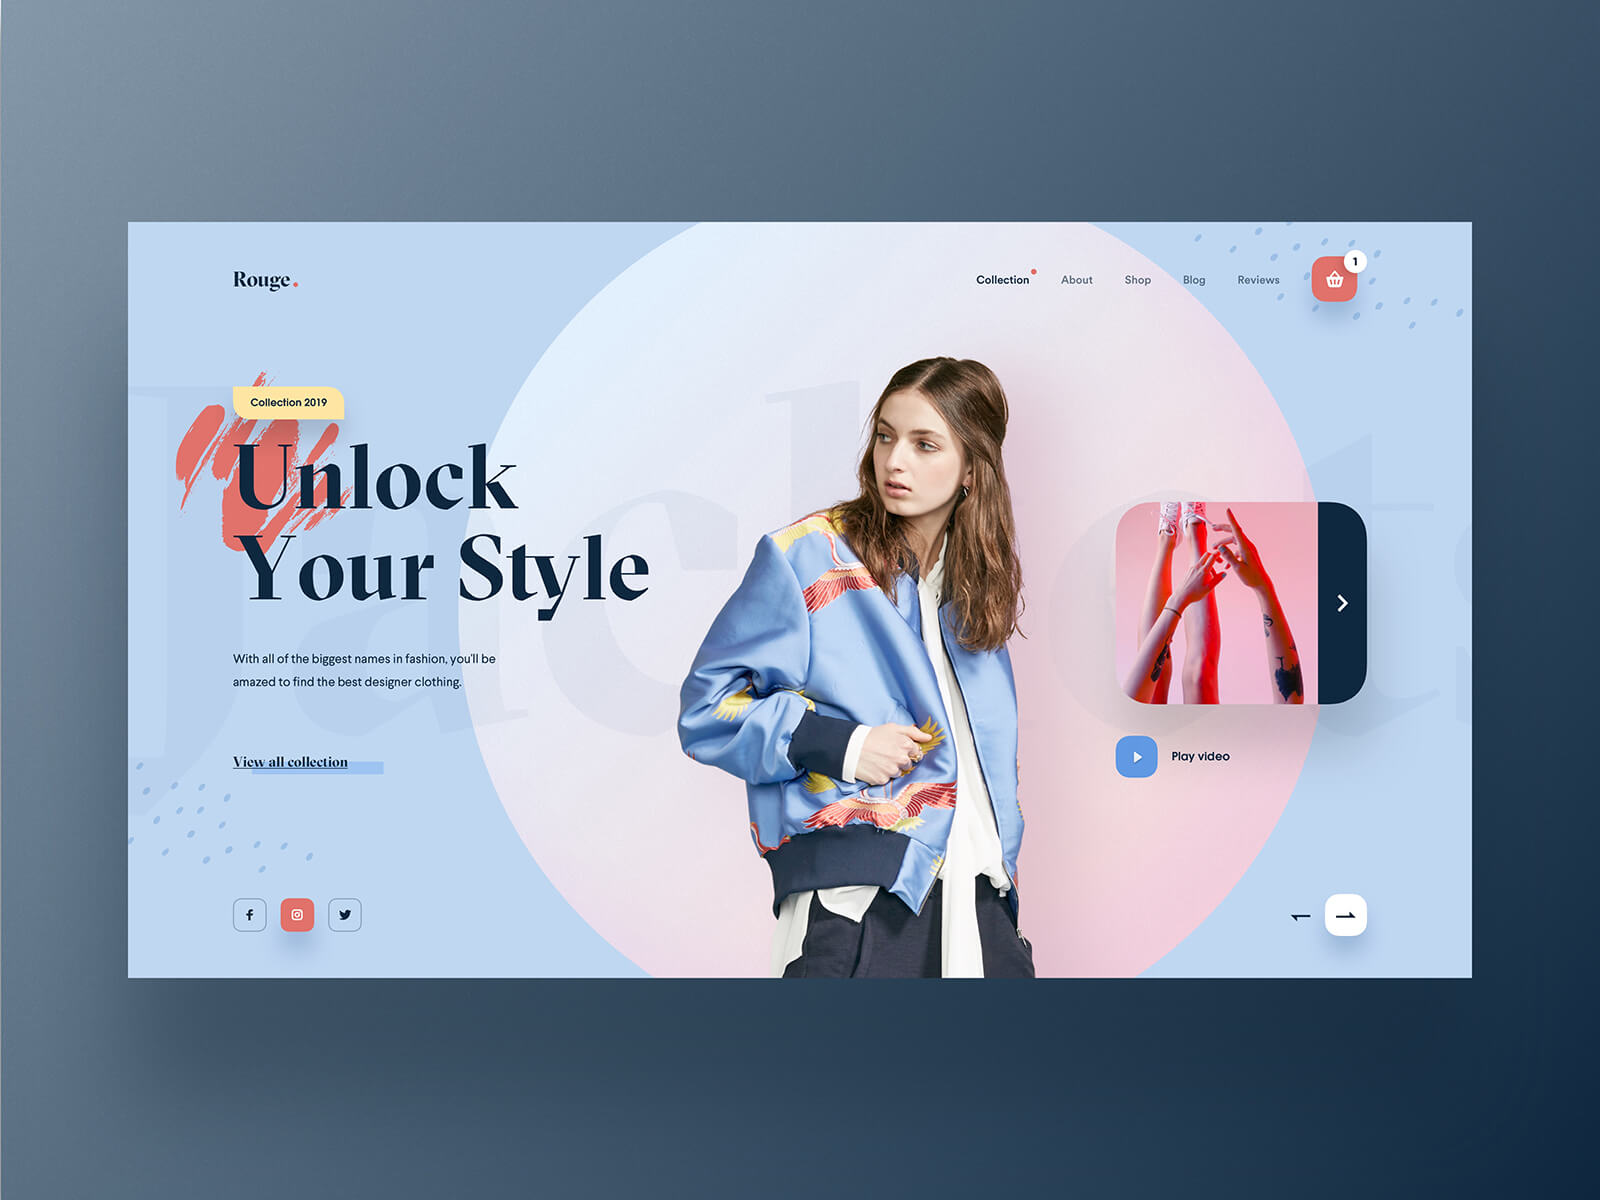 Online store website with a promotion slider on their homepage